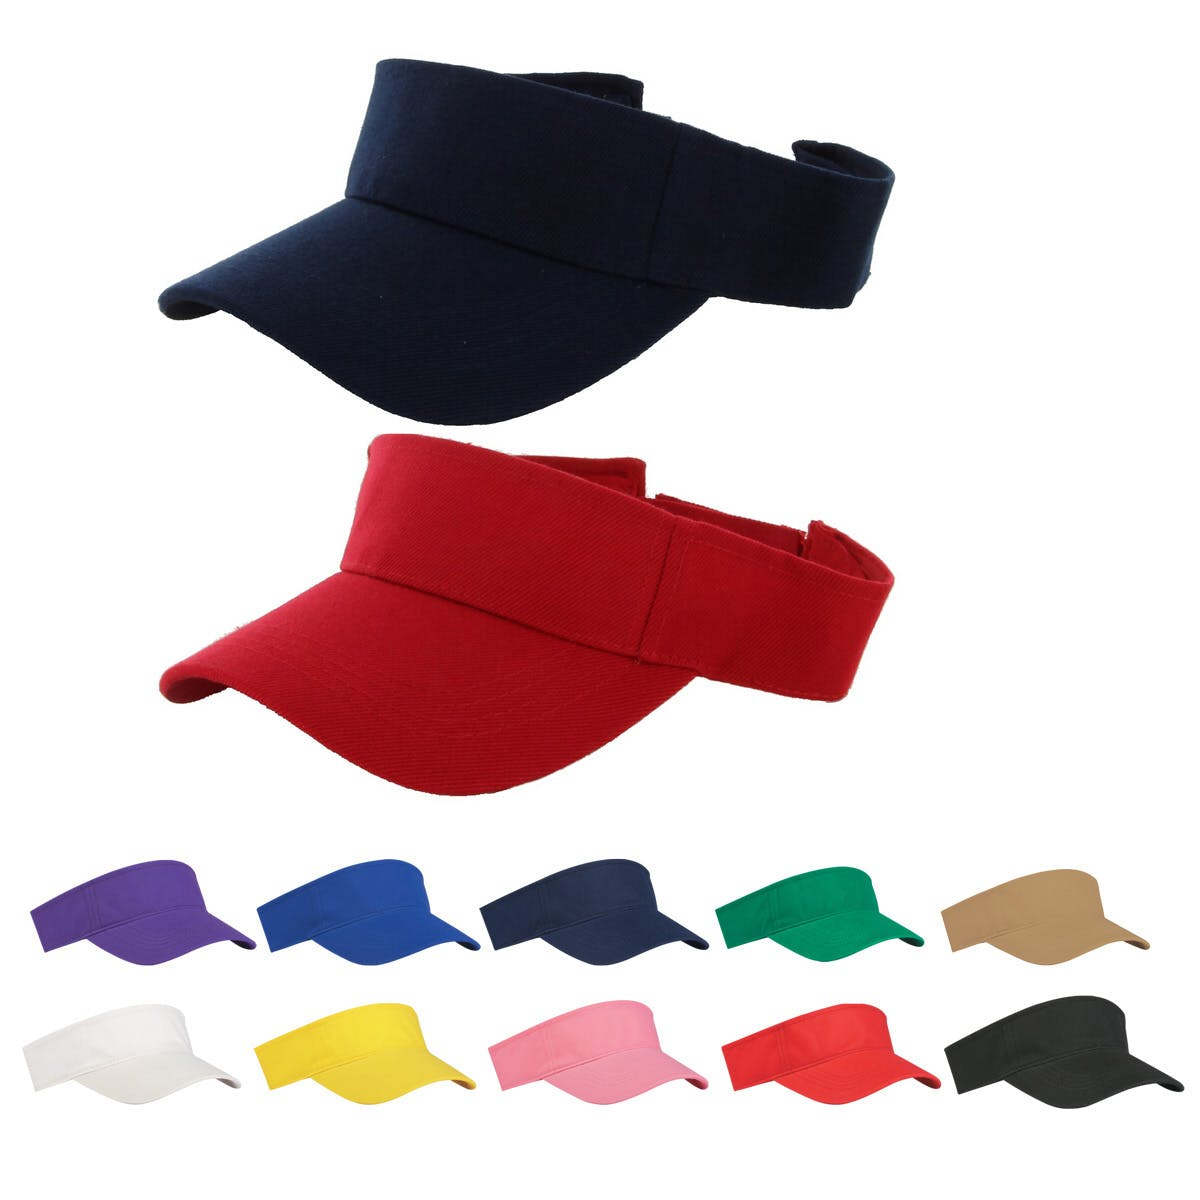 Budget Saver Visor (Item # XDJMT-KAKBC) Promotional apparel sold by InkEasy